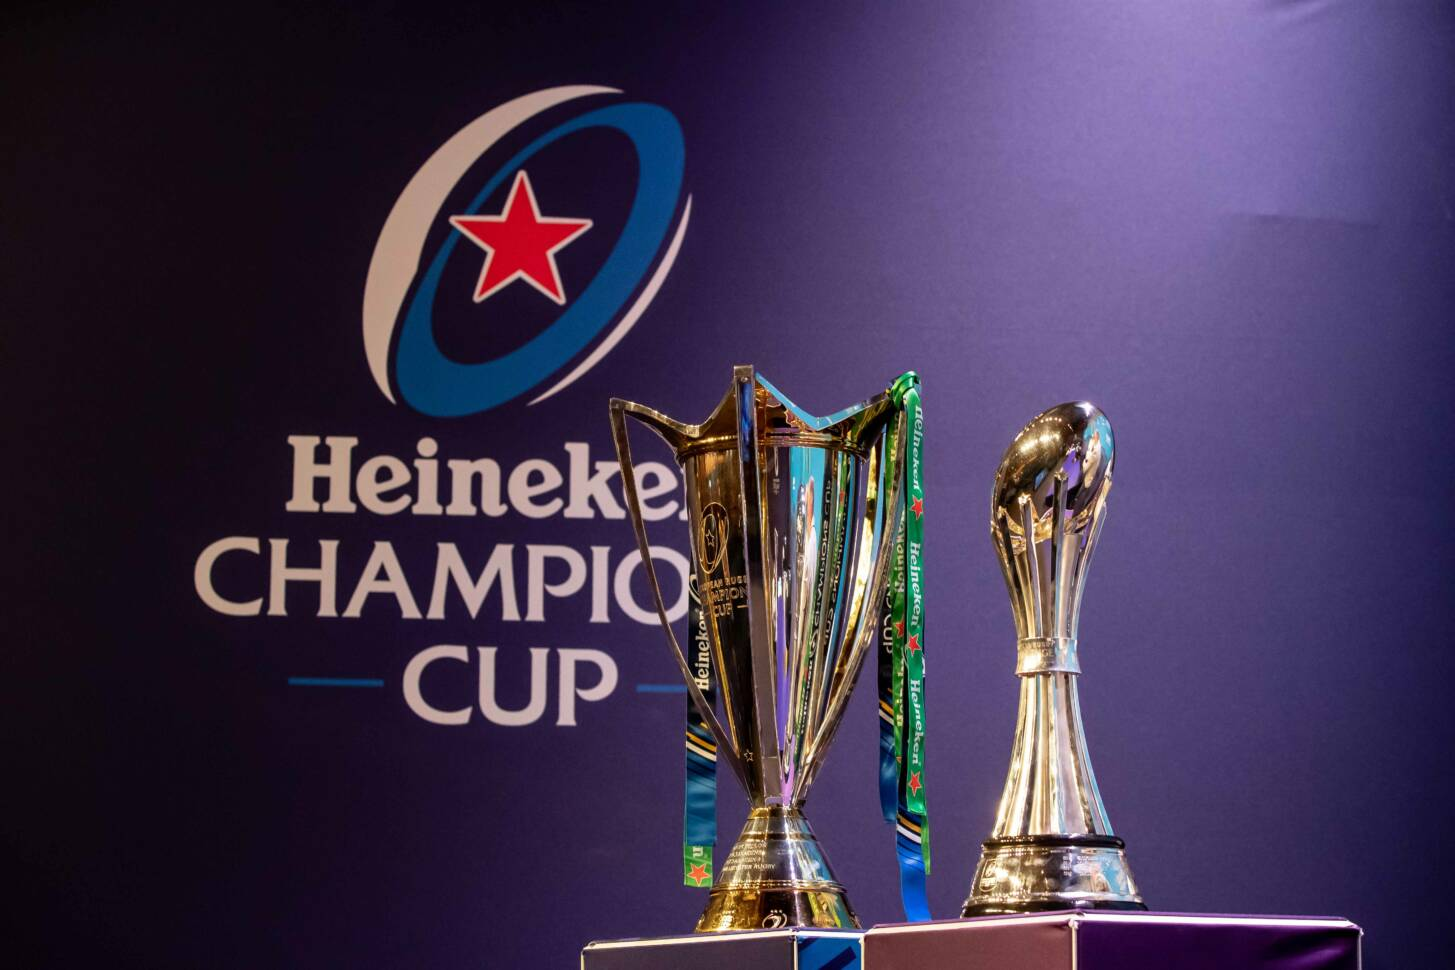 Heineken Champions Cup Quarter Final – Confirmed